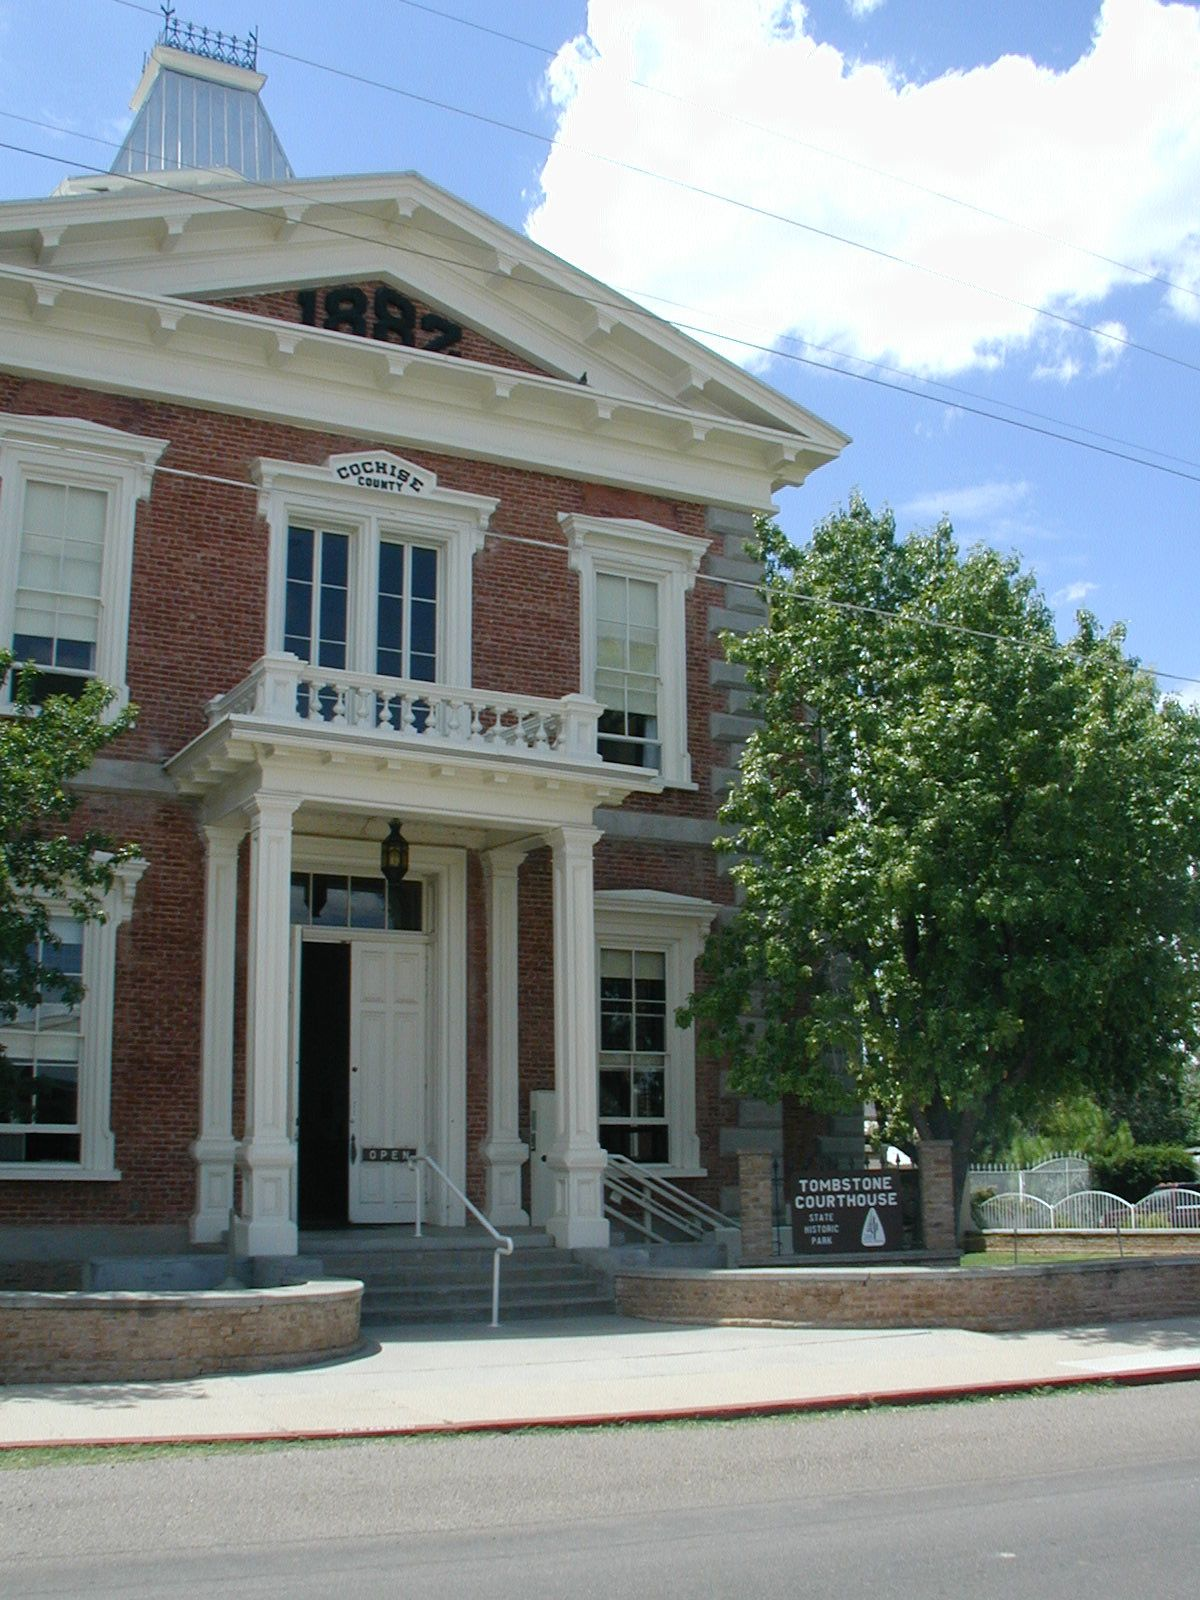 Ghost Trackers Investigate The Tombstone Courthouse In Haunted Arizona